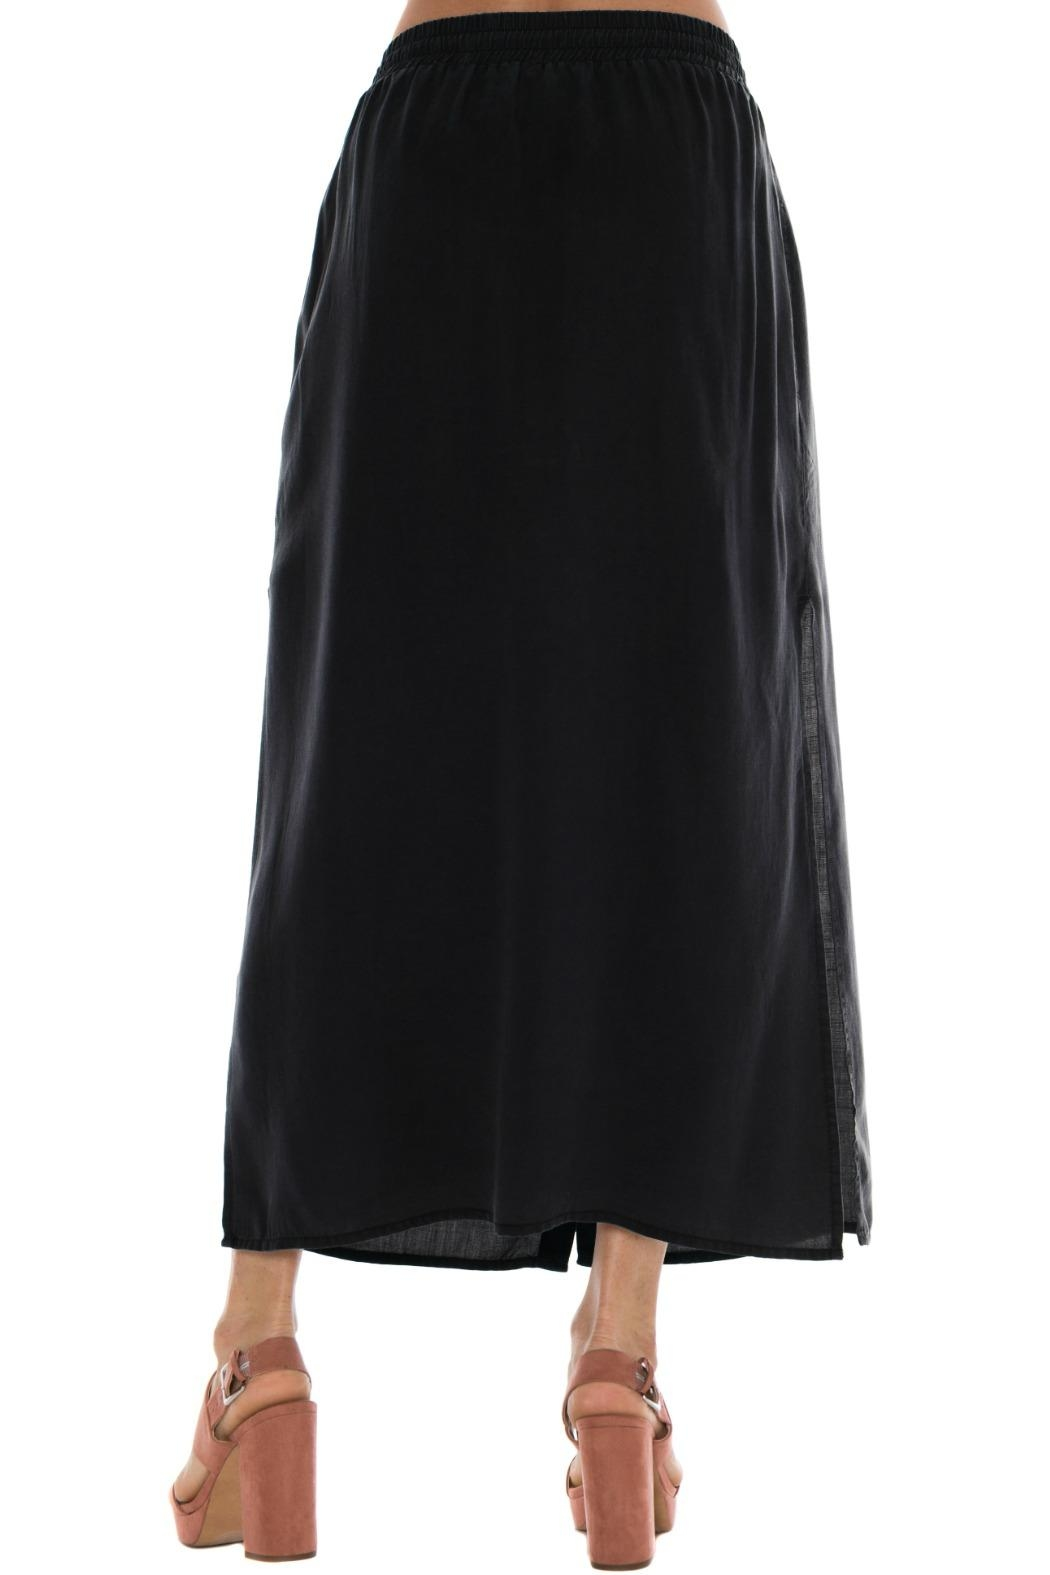 Bella Dahl Button Front Skirt - Front Full Image